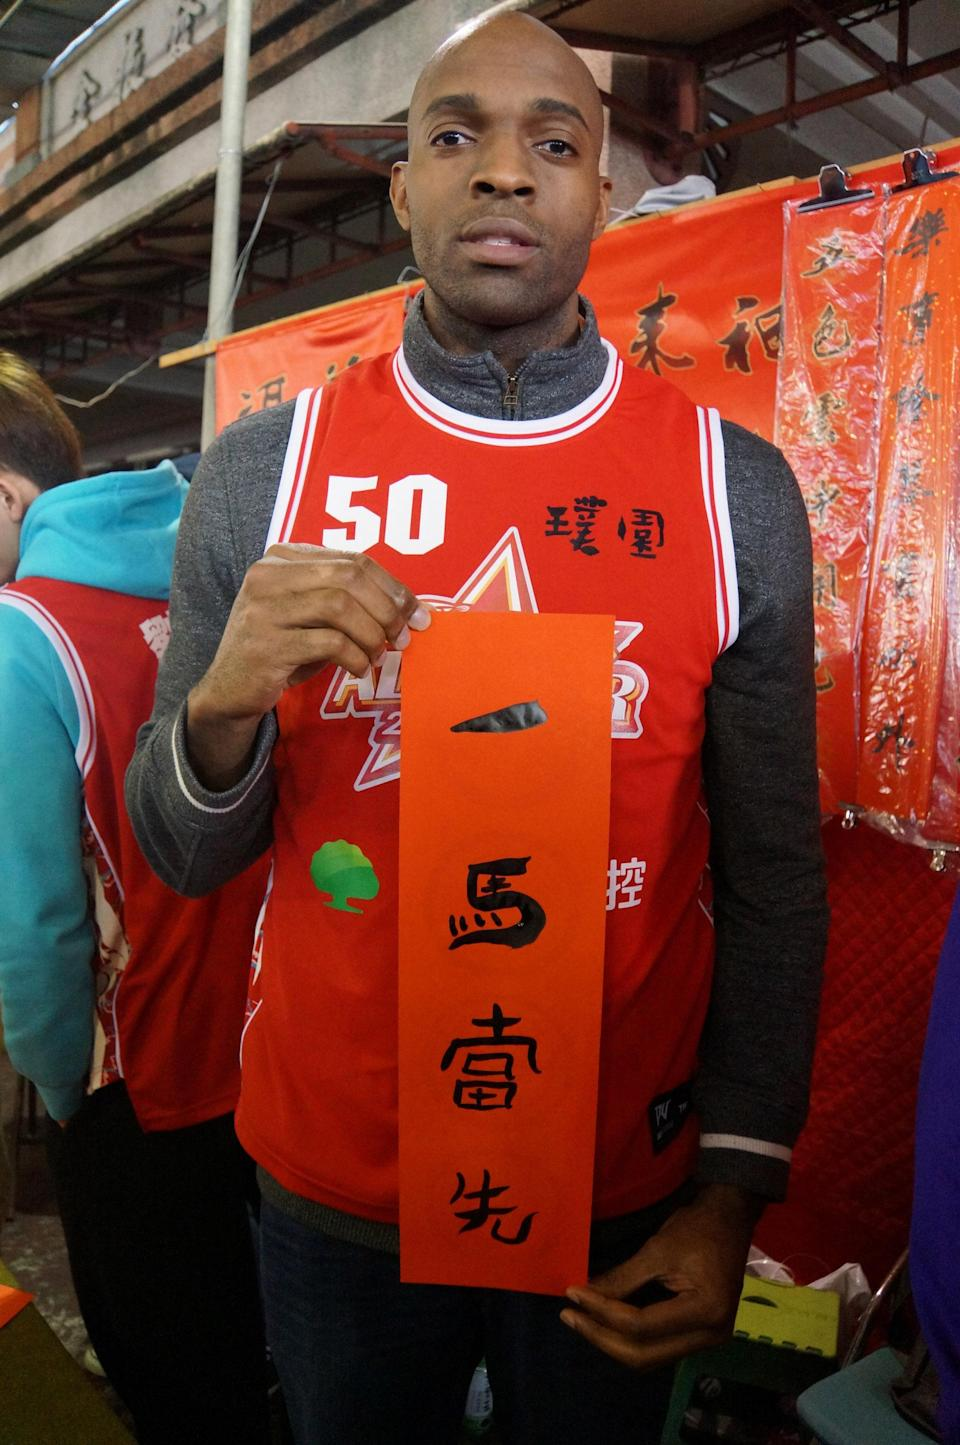 """In this Jan. 17, 2014 photo provided by the Pure Youth Construction basketball team, Quincy Davis III holds a Chinese New Year (Year of the Horse) greeting that reads """"Being The Lead Horse"""" in New Taipei City, Taiwan. When the Pure Youth Construction team's owner suggested in 2013 that Davis join Taiwan's national team, he says he found little motivation to keep his U.S. citizenship. """"When you think about who I am as a black guy in the U.S., I didn't have opportunities,"""" he says. """"You get discriminated against over there in the South. Here everyone is so nice. They invite you into their homes, they're so hospitable. ... There's no crime, no guns. I can't help but love this place."""" (AP Photo/Pure Youth Construction basketball team)"""